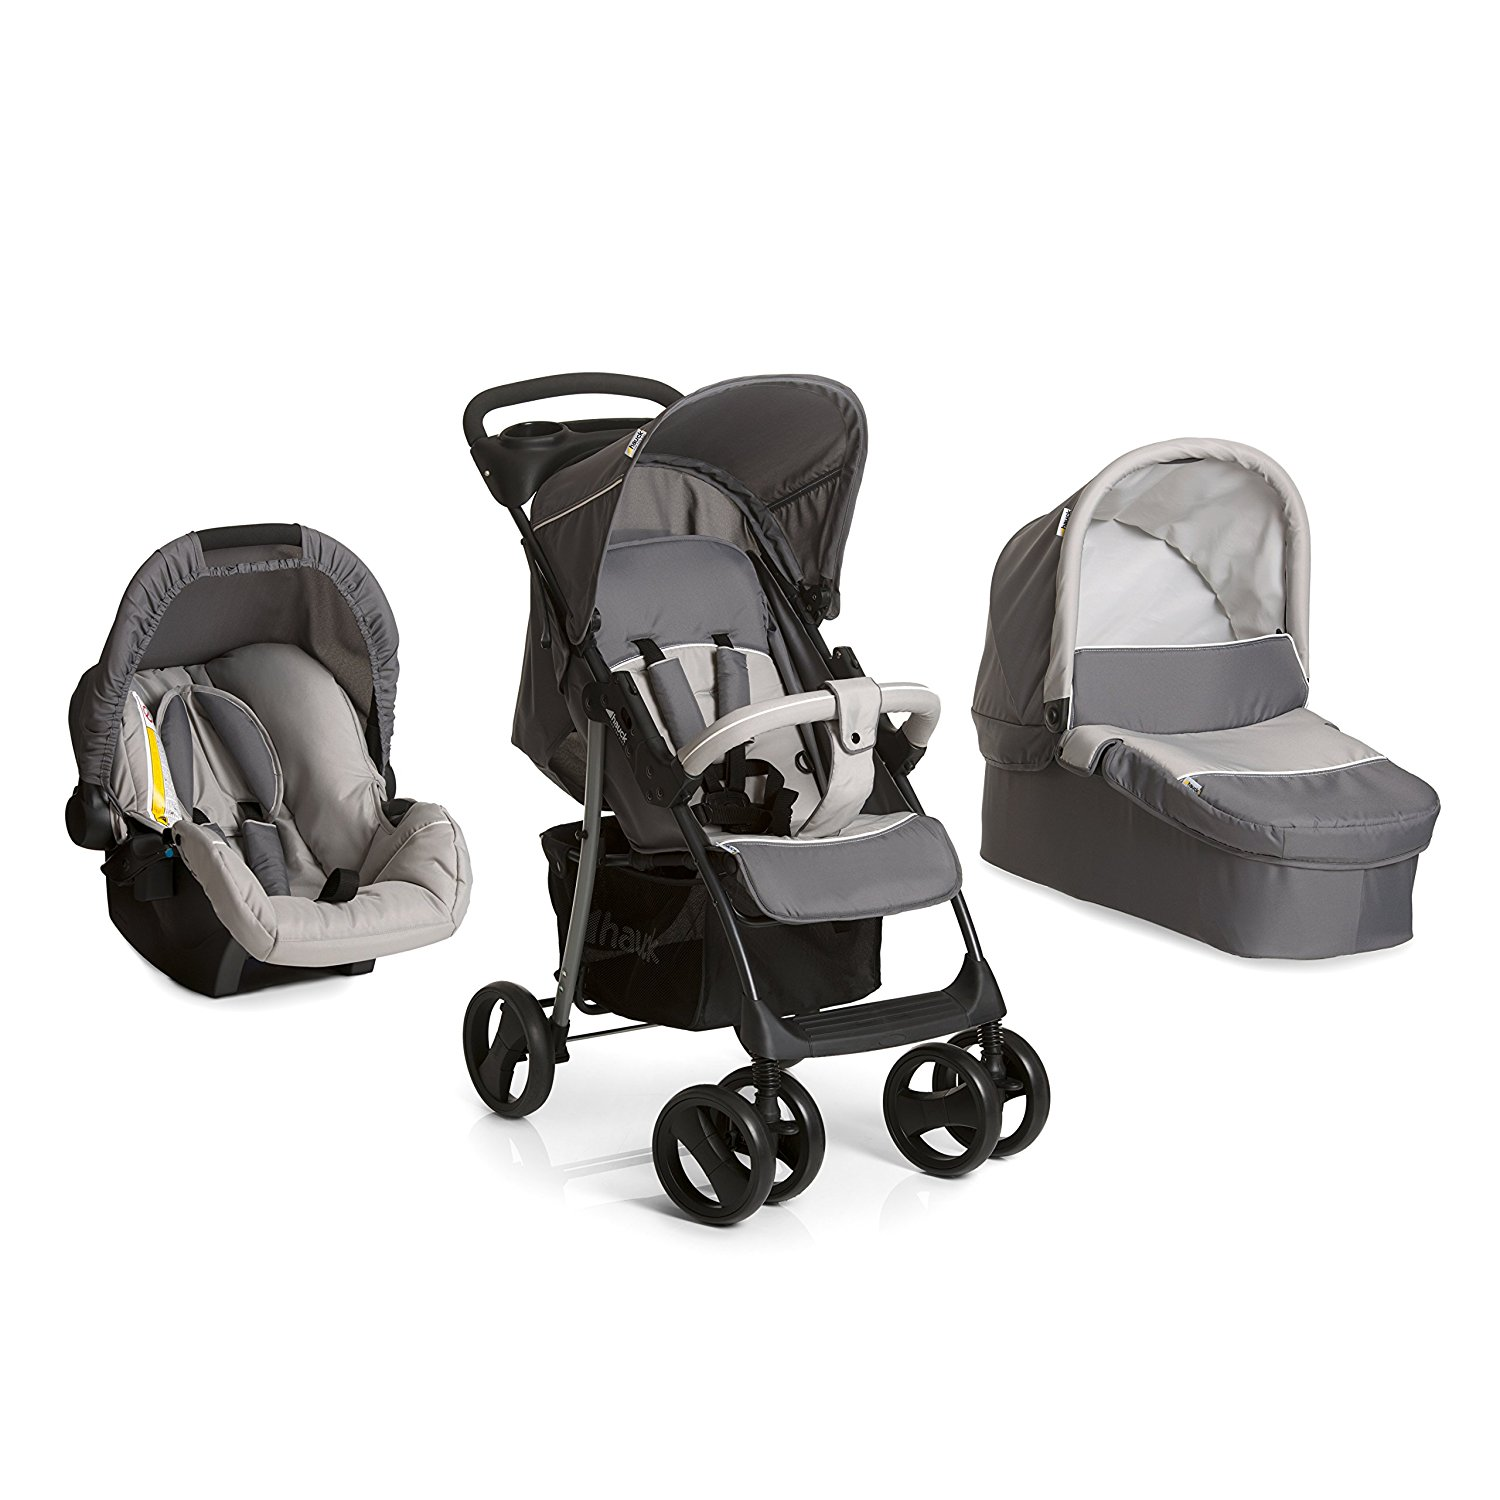 Hauck Shopper SLX Trio Set Poussette